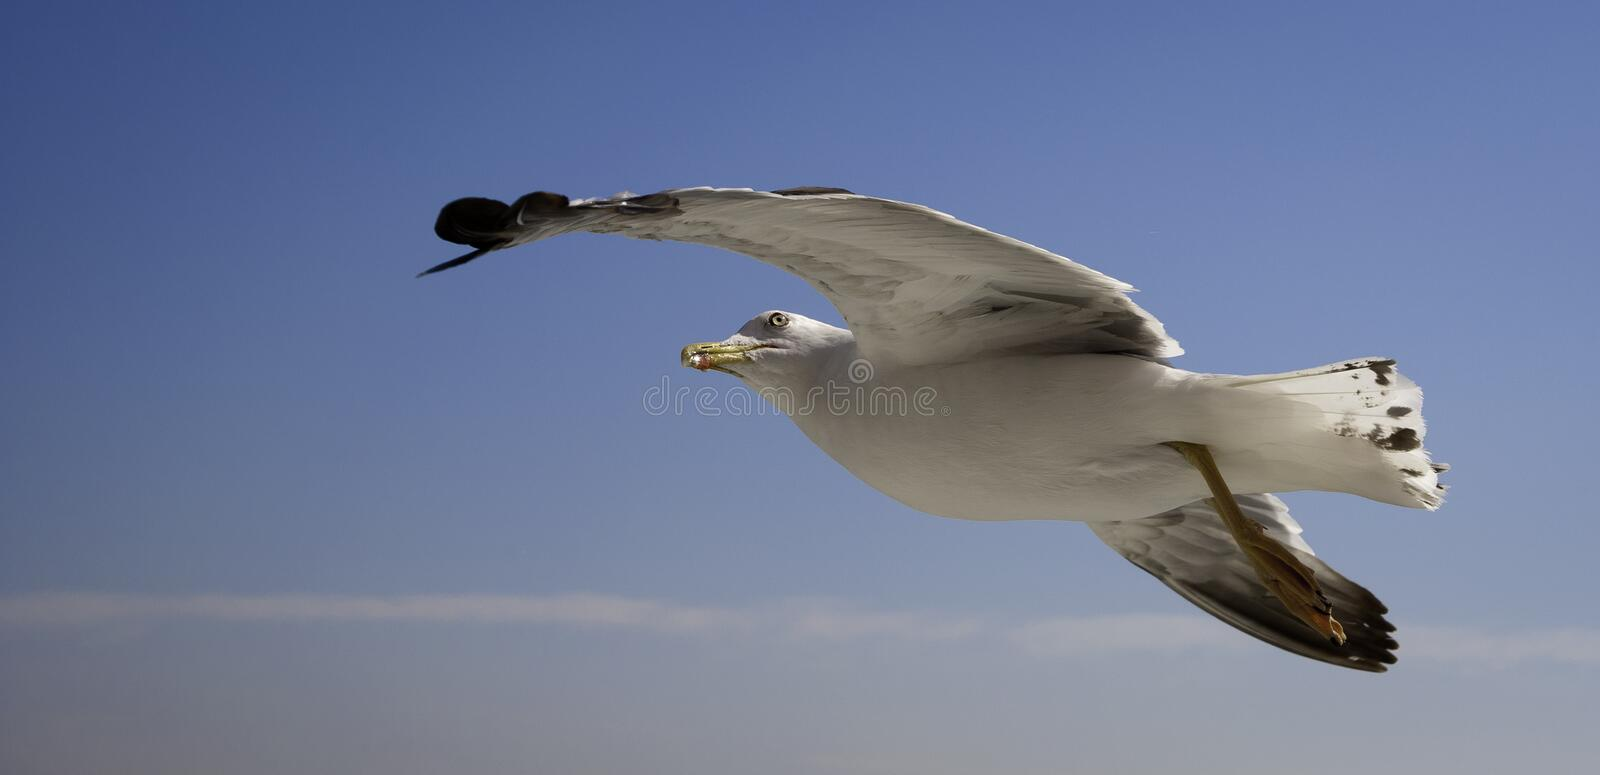 Sea gull flying in a blue sky with white clouds, l royalty free stock photography